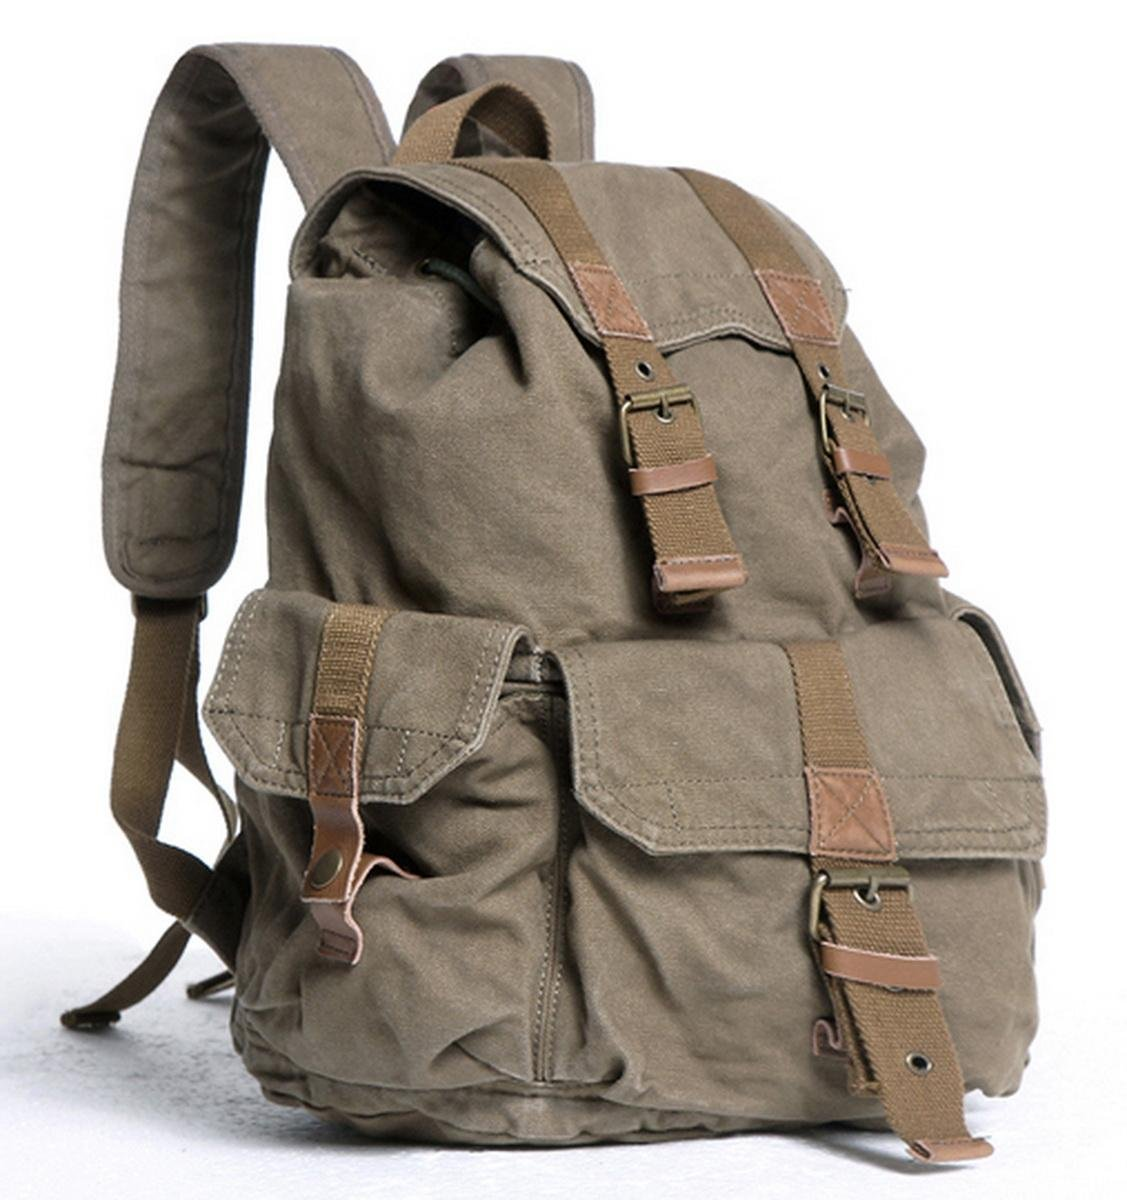 Vagabond Traveler 20'' Large Sport Washed Canvas Backpack C04.GRN